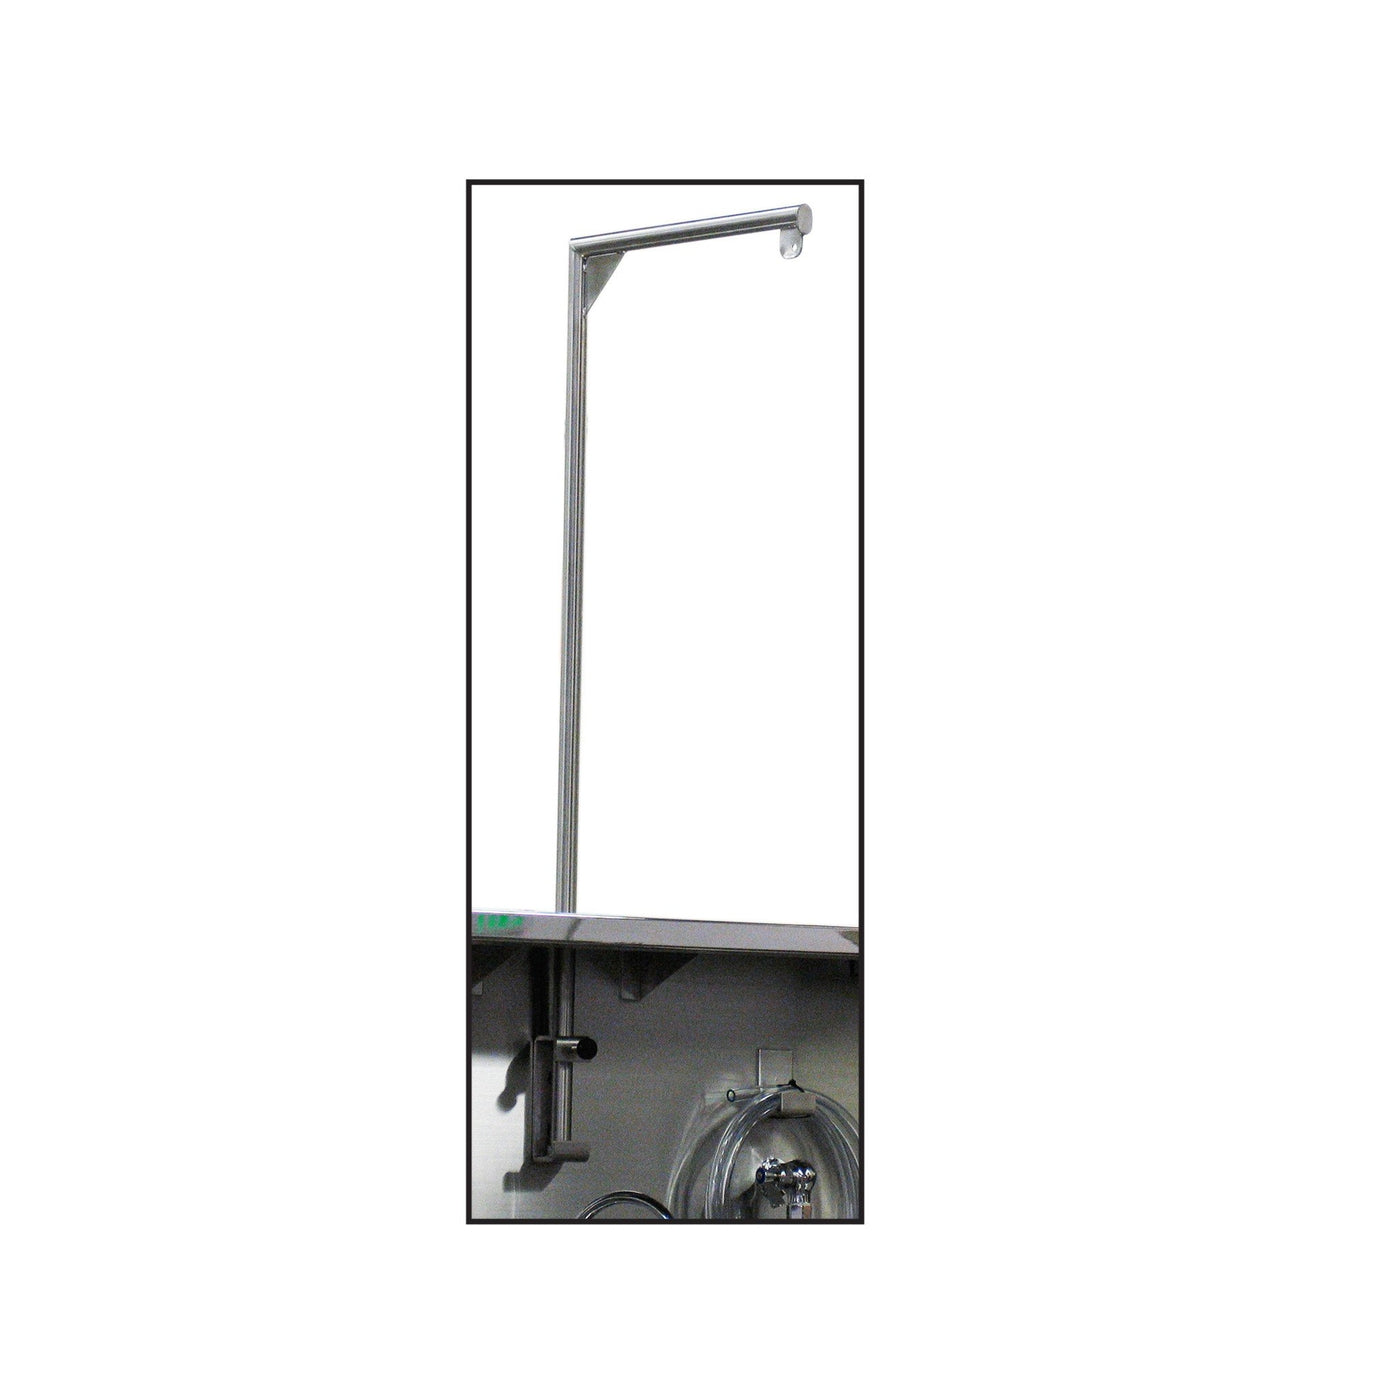 Scale Pole & Bracket for Sink Station-Laboratory Accessory-Mortech Manufacturing Company Inc. Quality Stainless Steel Autopsy, Morgue, Funeral Home, Necropsy, Veterinary / Anatomy, Dissection Equipment and Accessories